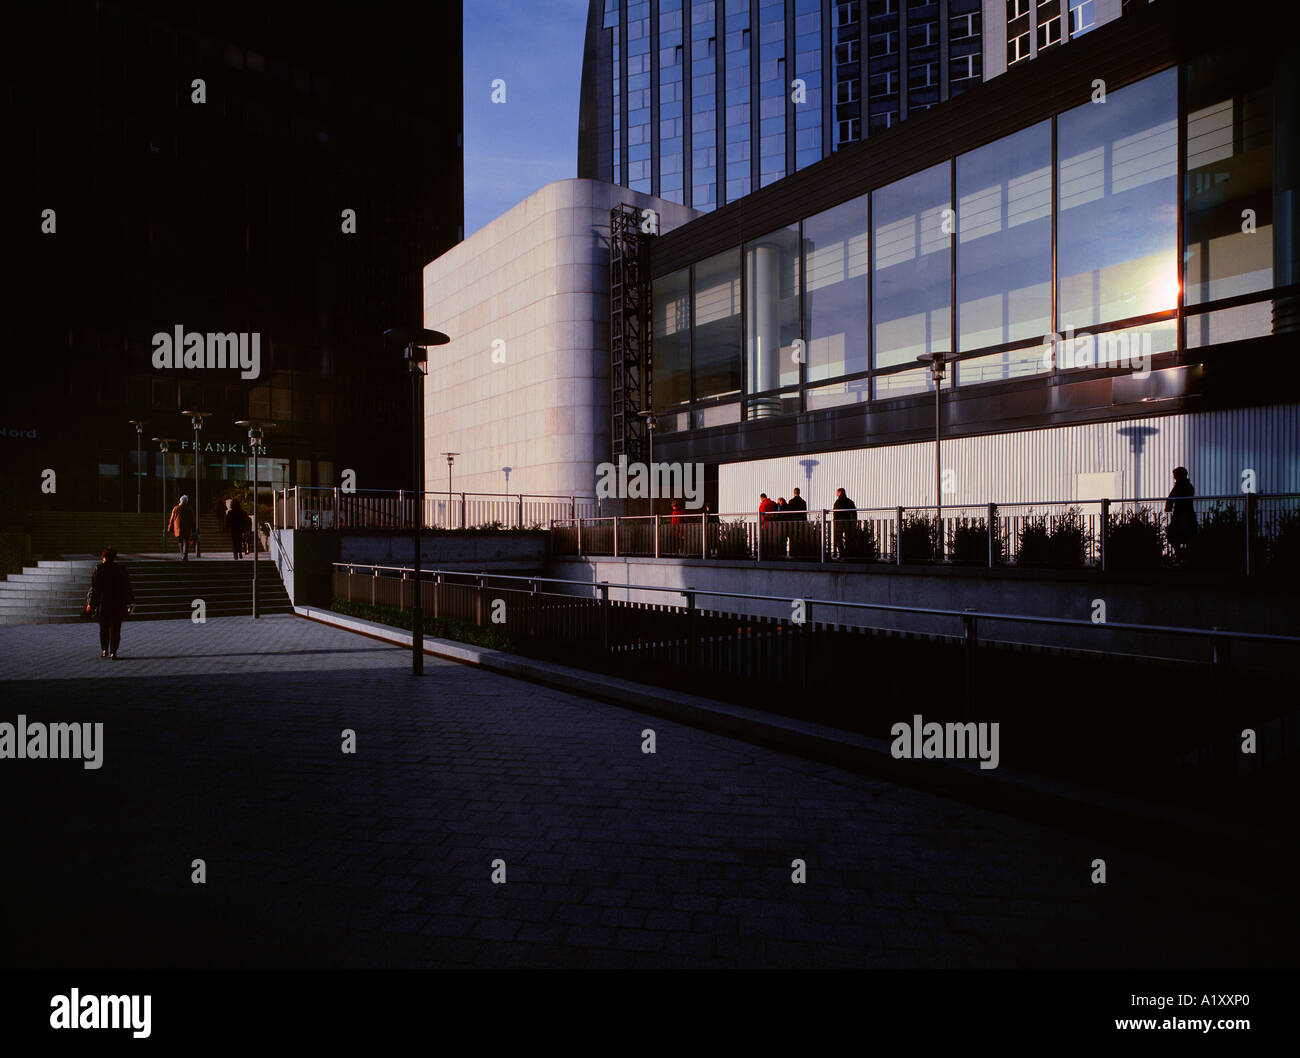 Dawn at 'La Defense', Paris, France. High-end scan of 6x7cm transparency. - Stock Image